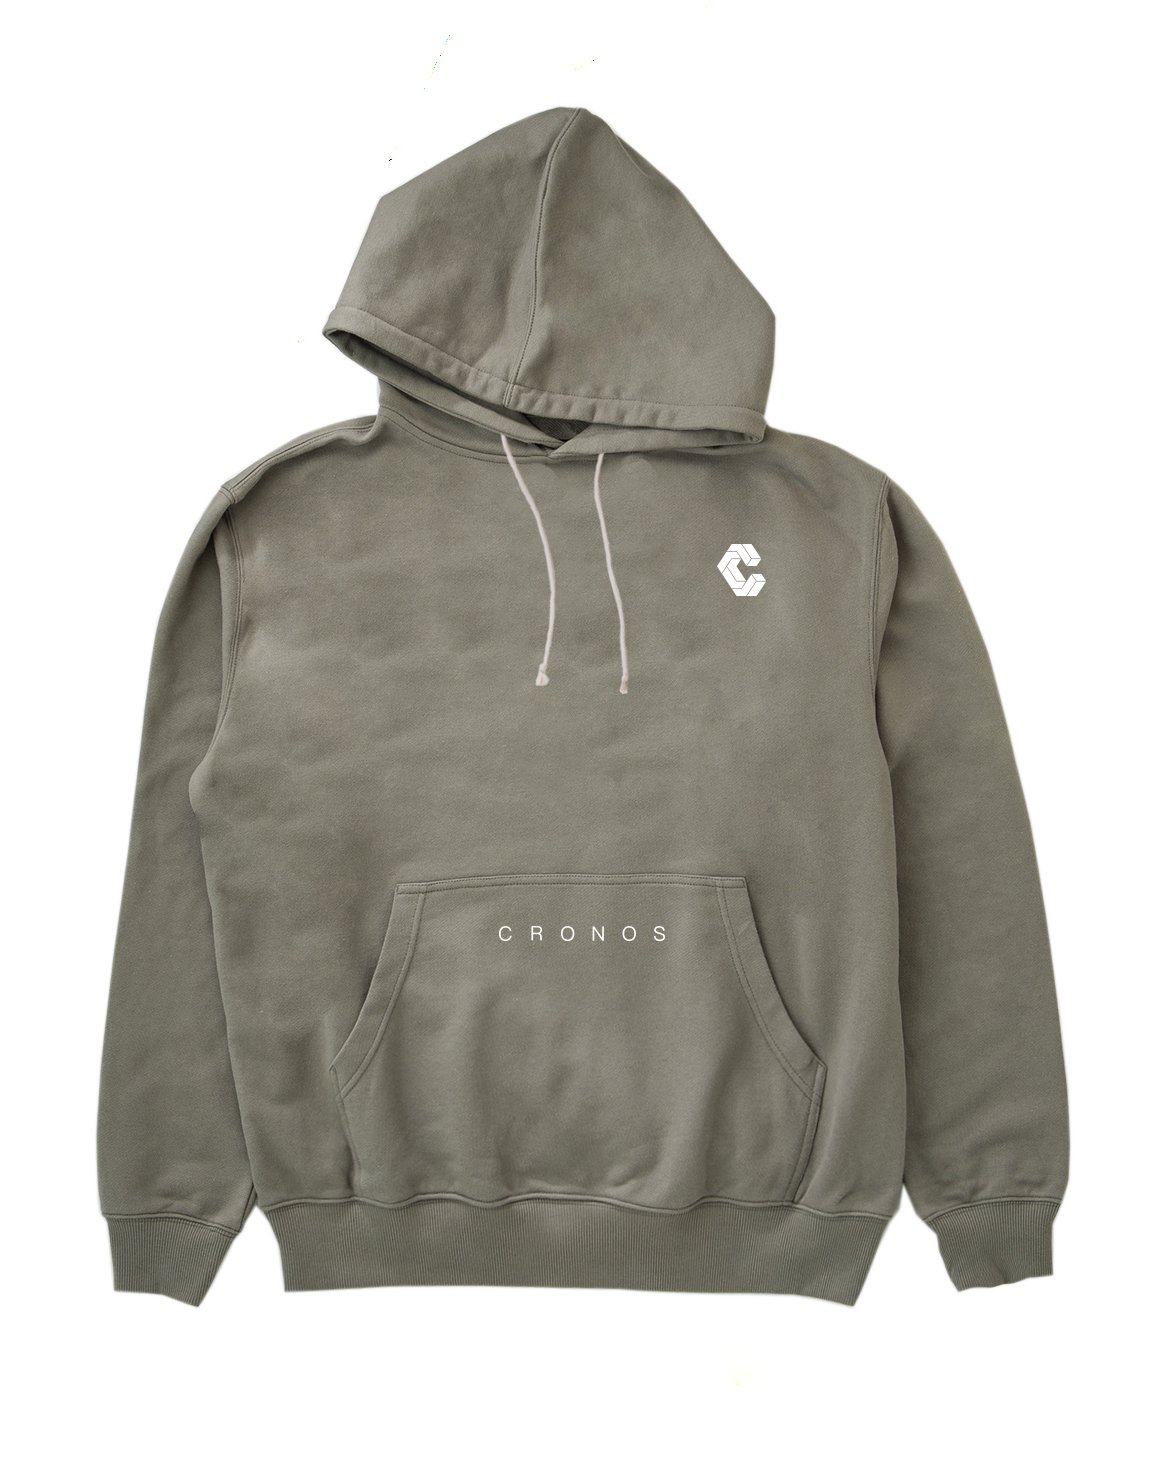 <img class='new_mark_img1' src='https://img.shop-pro.jp/img/new/icons1.gif' style='border:none;display:inline;margin:0px;padding:0px;width:auto;' />CRONOS PULL OVER PARKA 【GRAY】